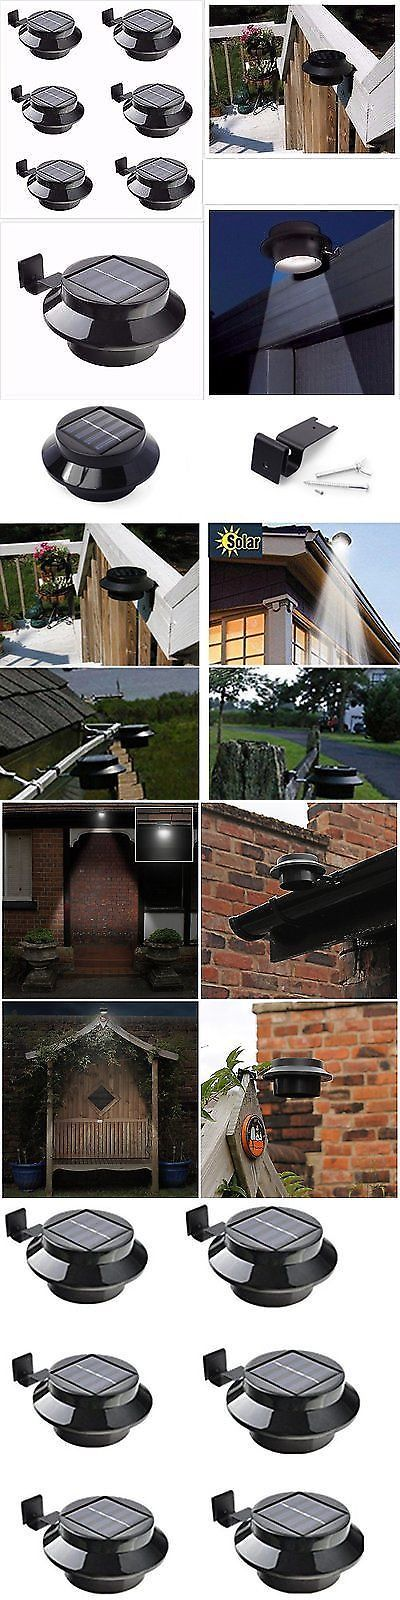 Farm And Garden: 6 Pack Solar Power Outdoor Waterproof Gutter Fence Led  Security Spot Flood Great Pictures